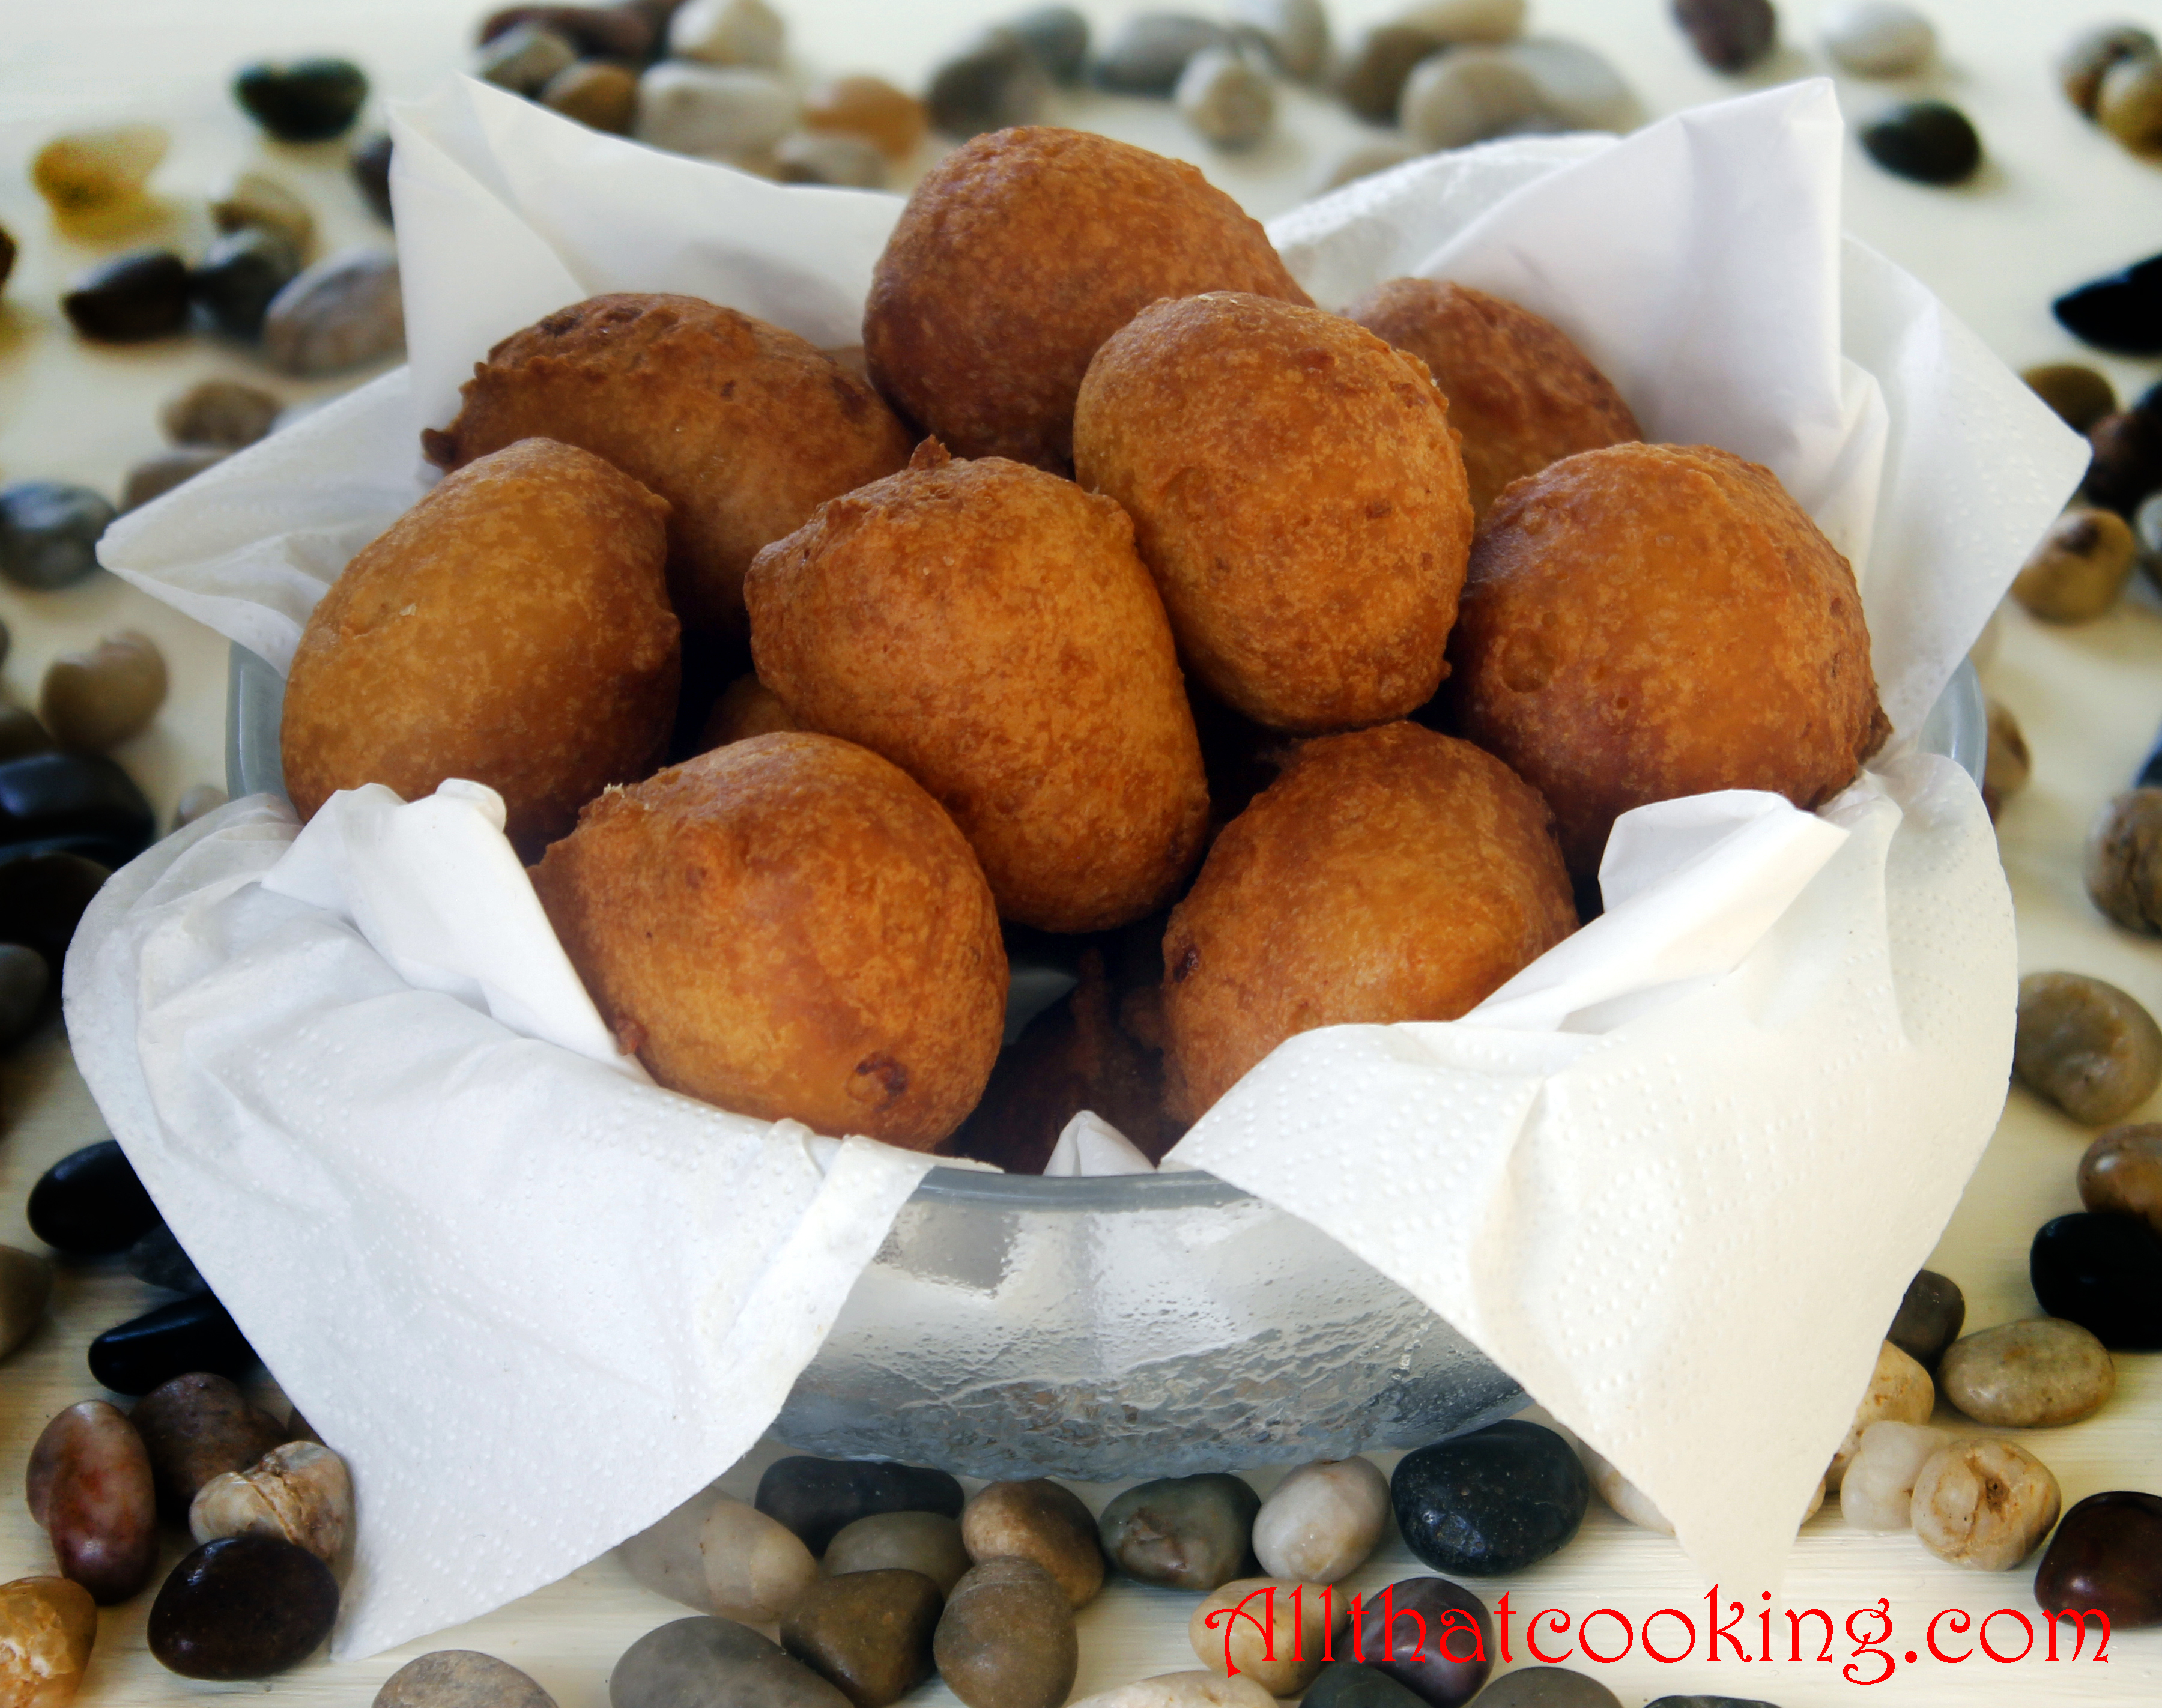 Hush Puppies | All That Cooking